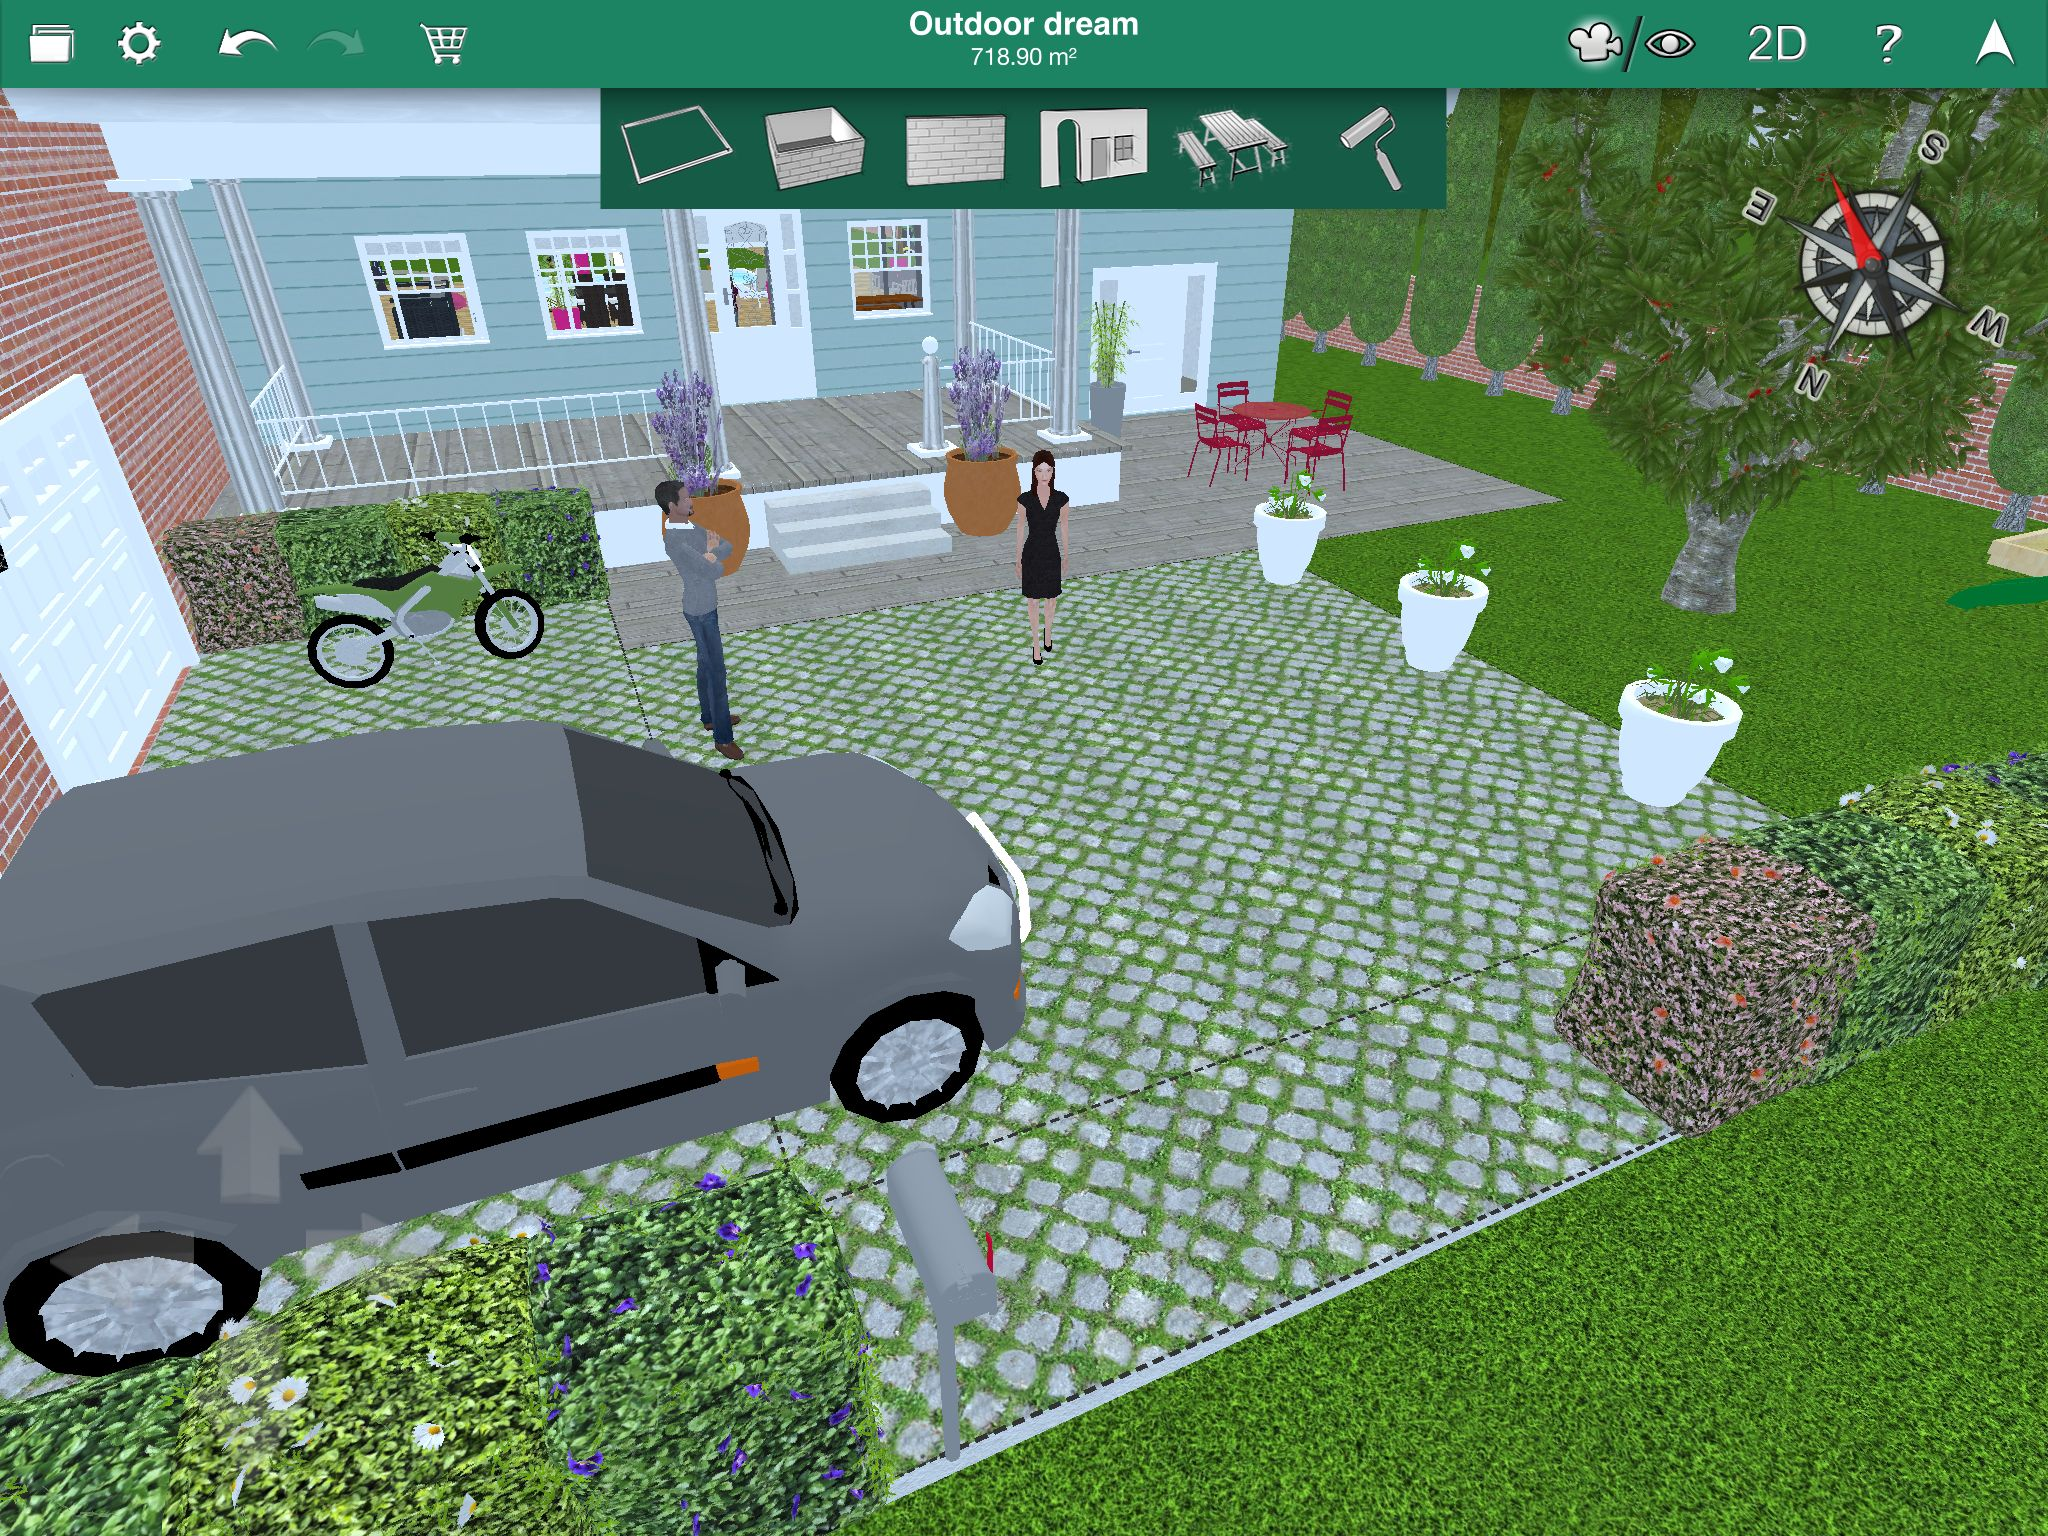 Home Design 3d Outdoor And Garden Full : Buy your home design d outdoor garden cd key at the cheapest price